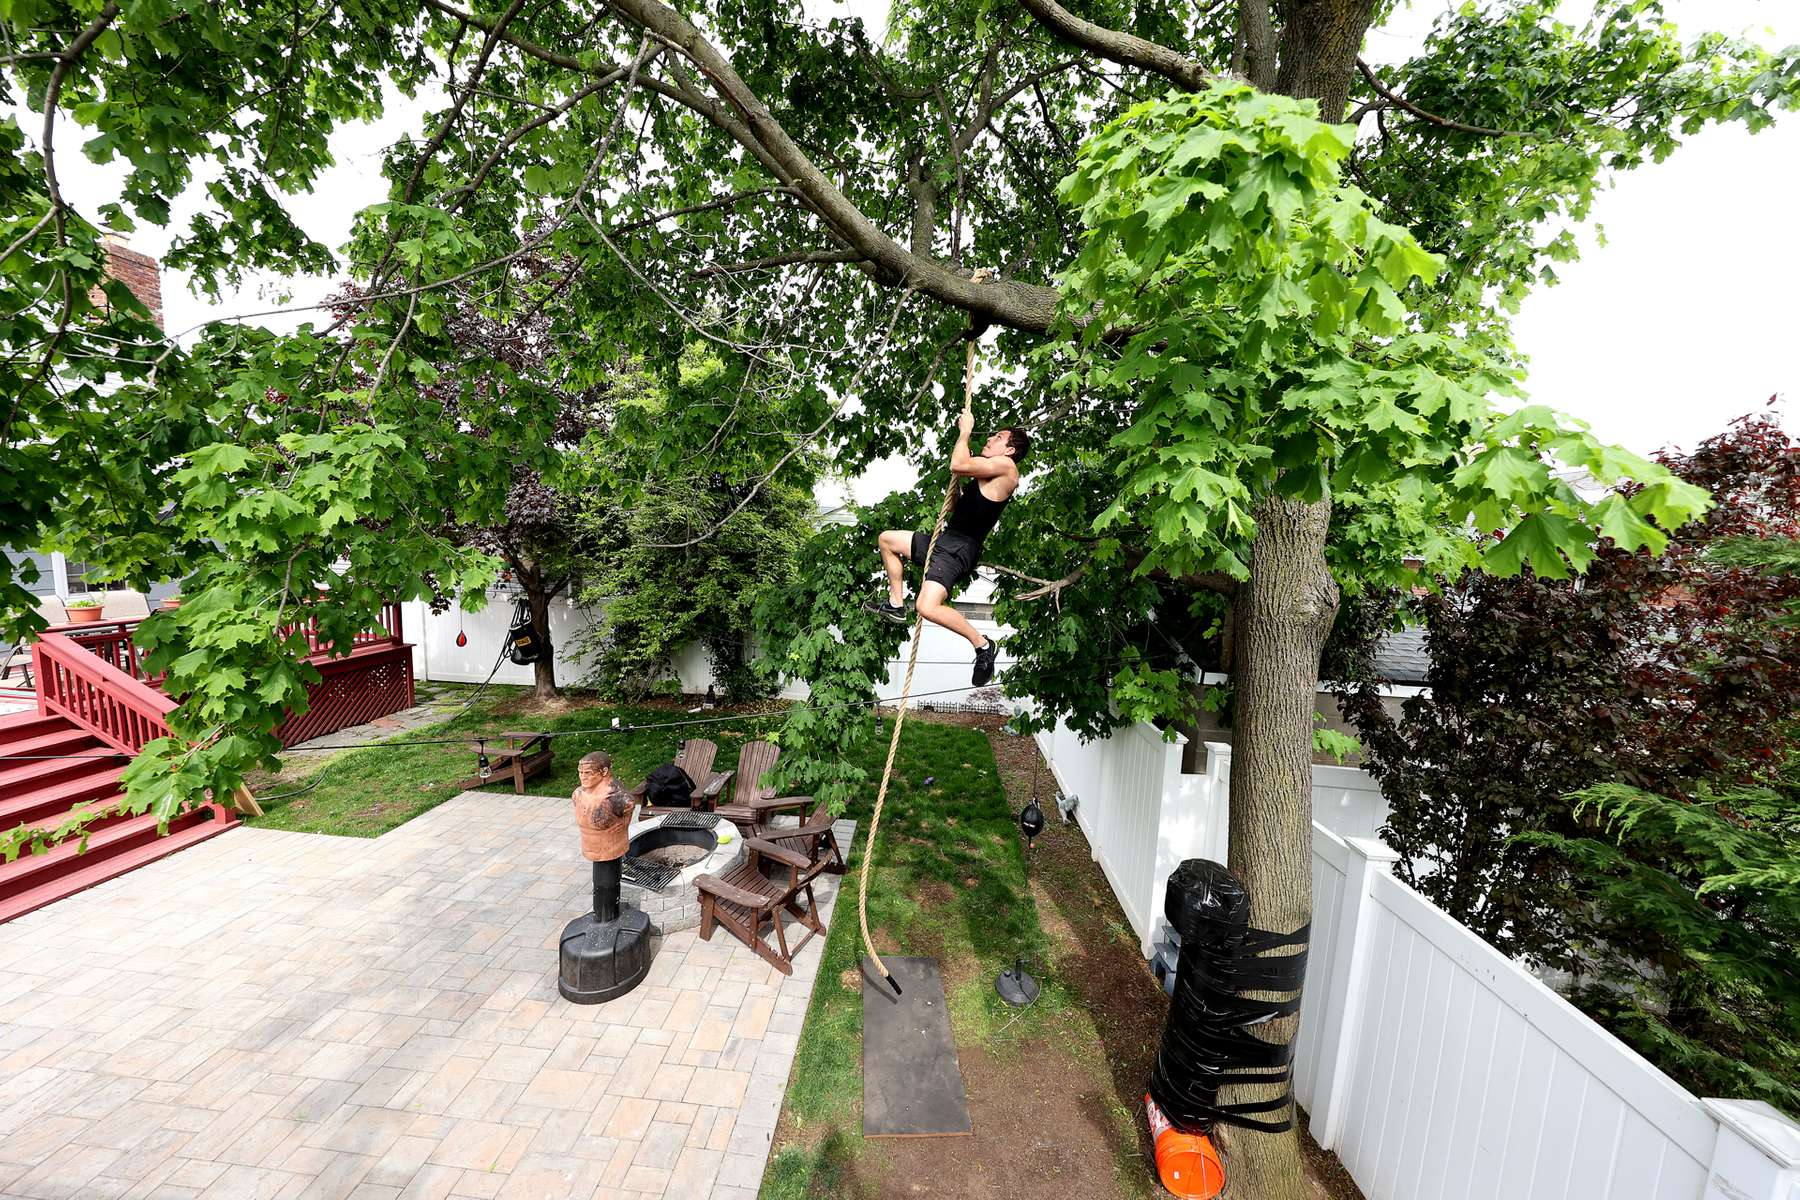 Zach Blumberg climbs a rope he attached to the top of a tree in his backyard on May 18, 2020 in Oceanside, New York.  Zach is an Amateur boxer who fought in the New York City Golden Gloves. He was training to compete in this year's Golden Gloves tournament but it has been cancelled due to the coronavirus pandemic.  The Gym he fights for is called the Freeport Boxing Club and has been closed by New York Governor Andrew Cuomo since March 16th due to the coronavirus COVID-19 pandemic.  Until the gyms are deemed safe to open he will continue to stay fit by training at home with the hope that he can box again later this year.